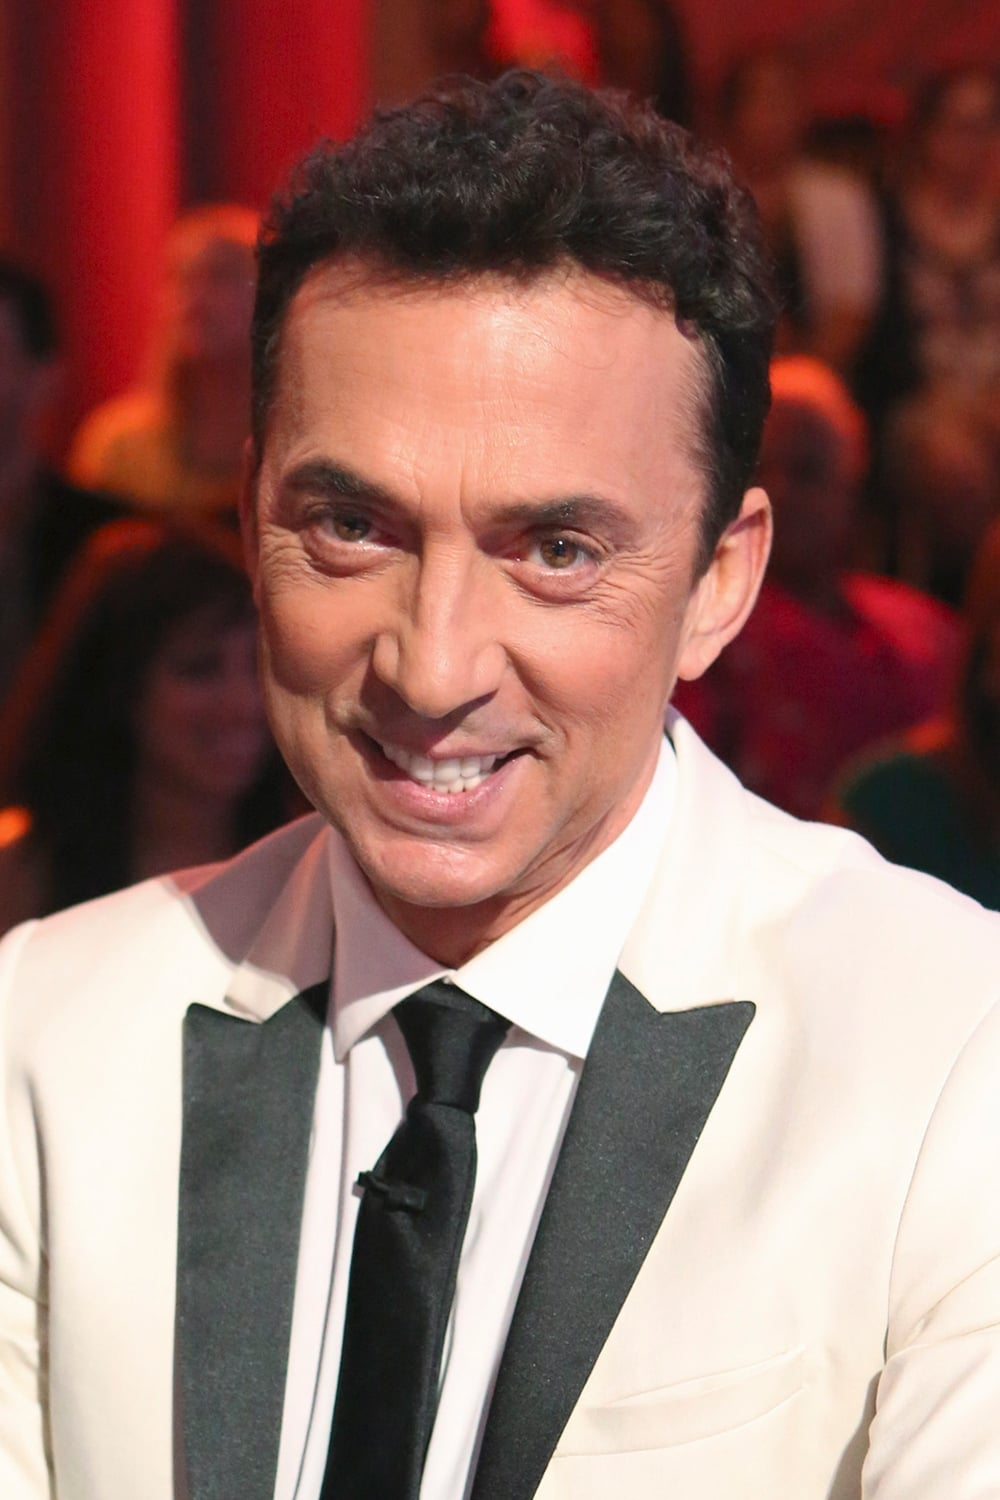 Bruno Tonioli / Himself - Judge